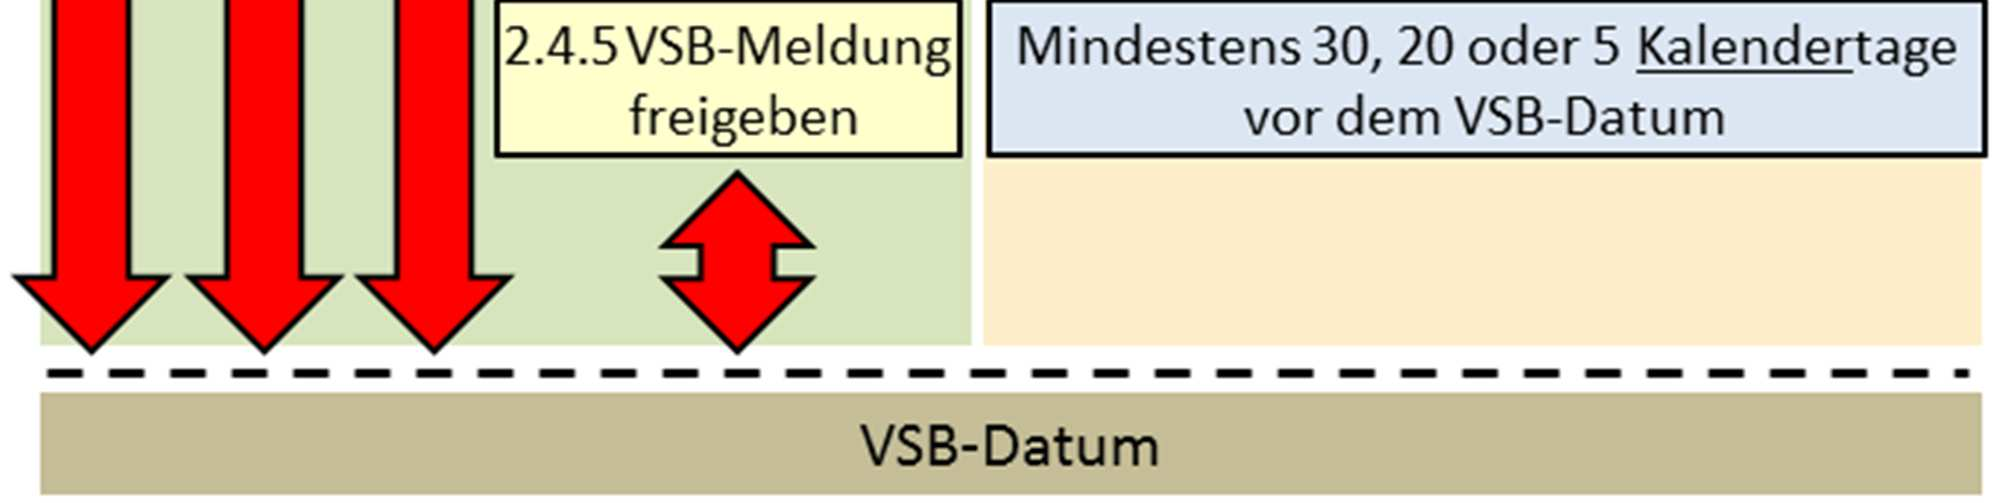 2.4 Terminfristen 2.4 Deadlines Abb. 5: Überblick der Aktivitäten und Terminfristen Figure 5: Overview about the Activities and Deadlines 2.4.1 Zugang zum Lieferantenportal beantragen Hat der AN noch keinen Zugang zum Lieferantenportal http://www.